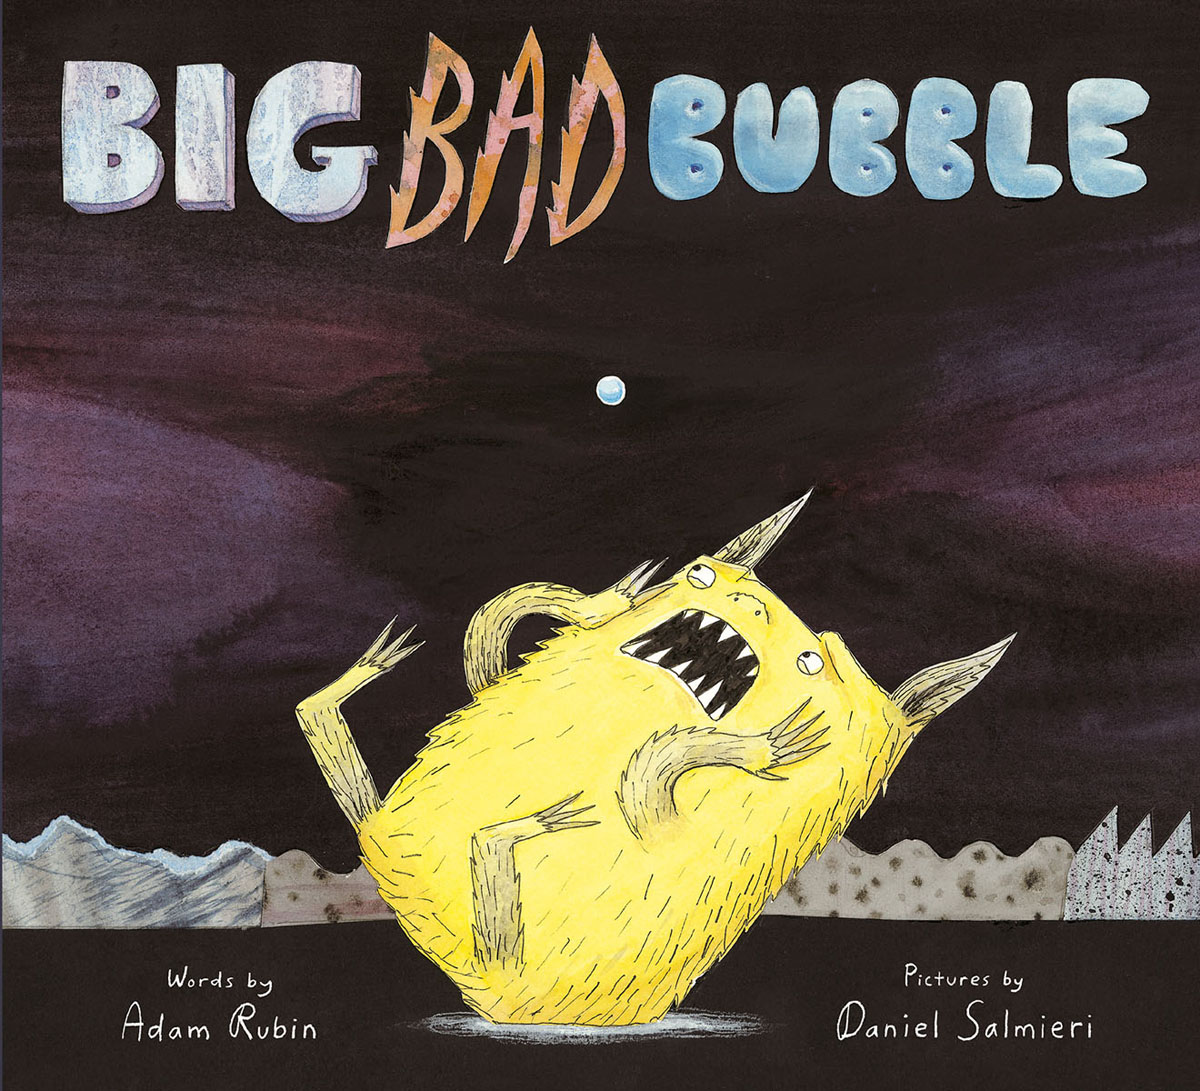 Big Bad Bubble monsters of folk monsters of folk monsters of folk